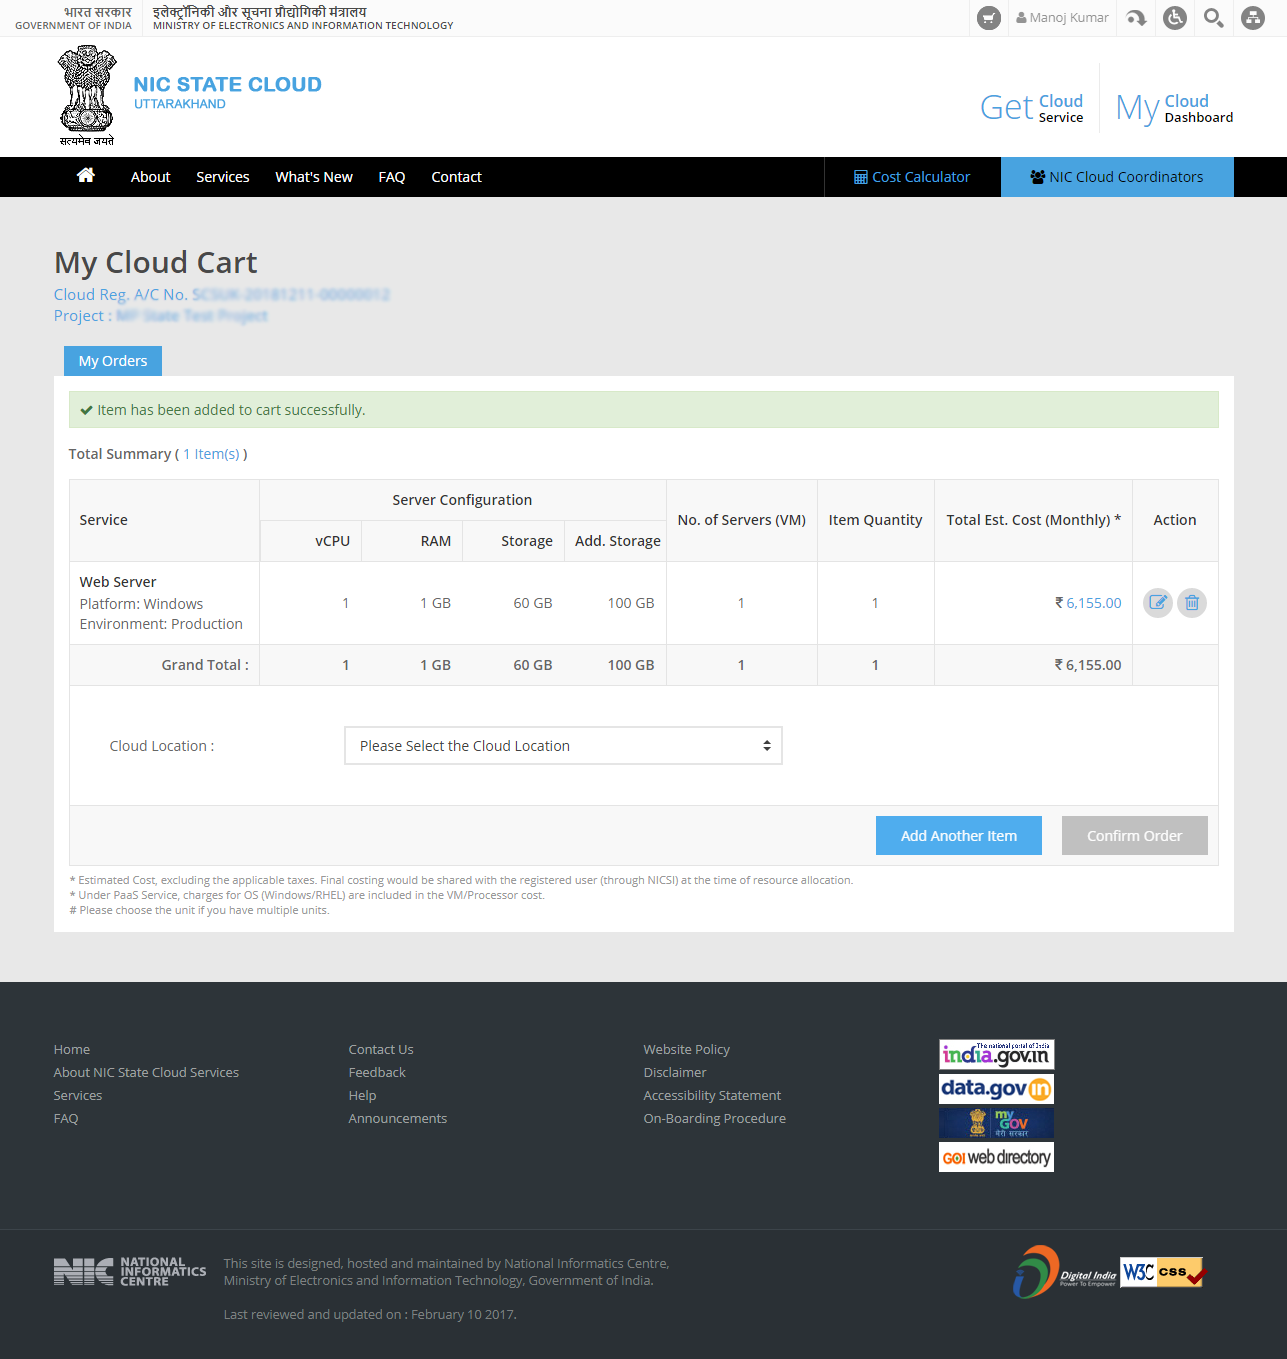 Uttarakhand State Cloud Services, Services Available on Cloud, Service Request Cloud Cart